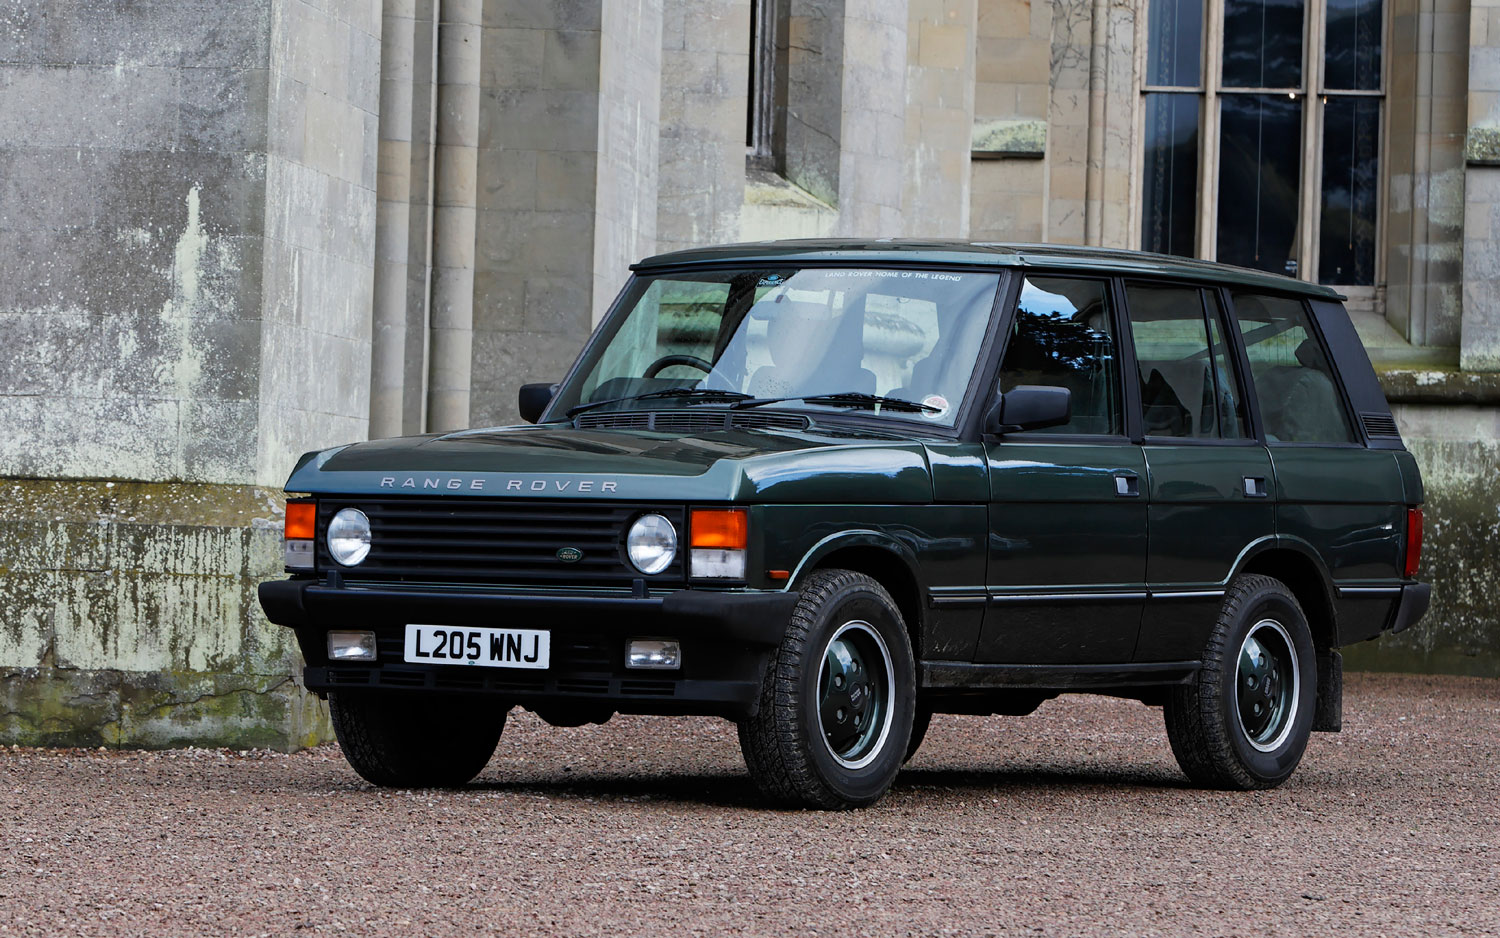 1995 land rover range rover - image #6